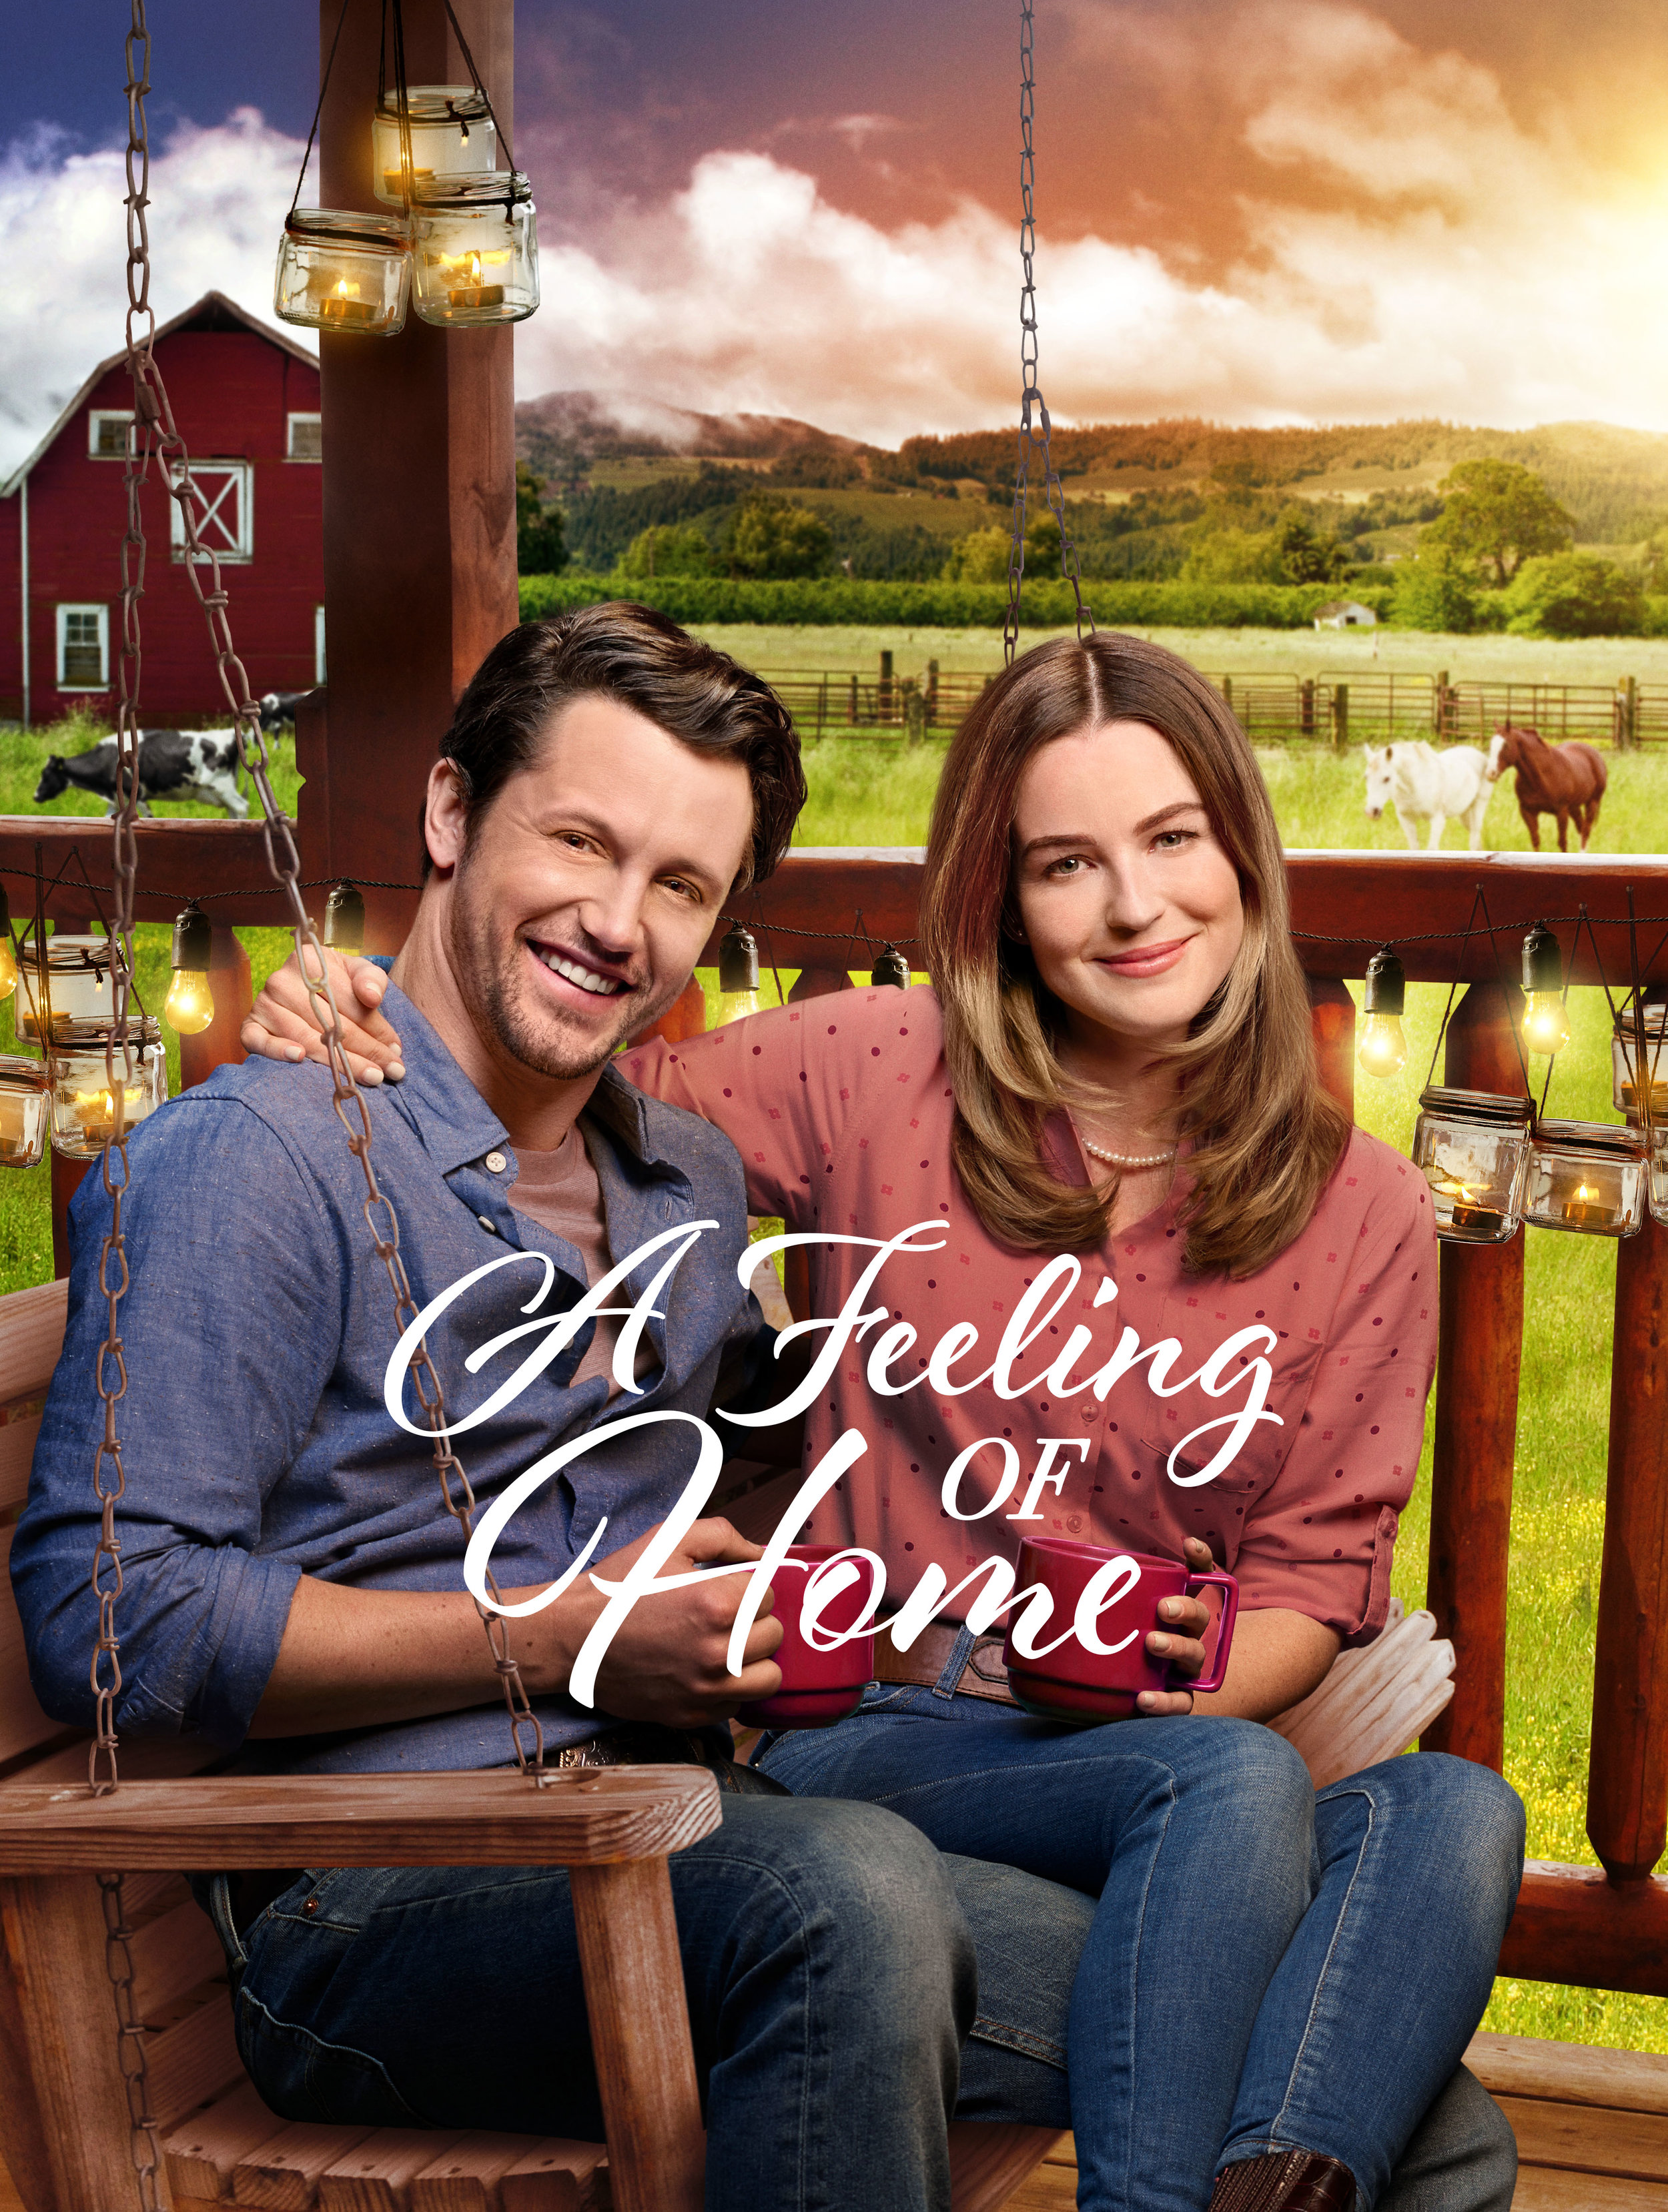 Copy of A FEELING OF HOME